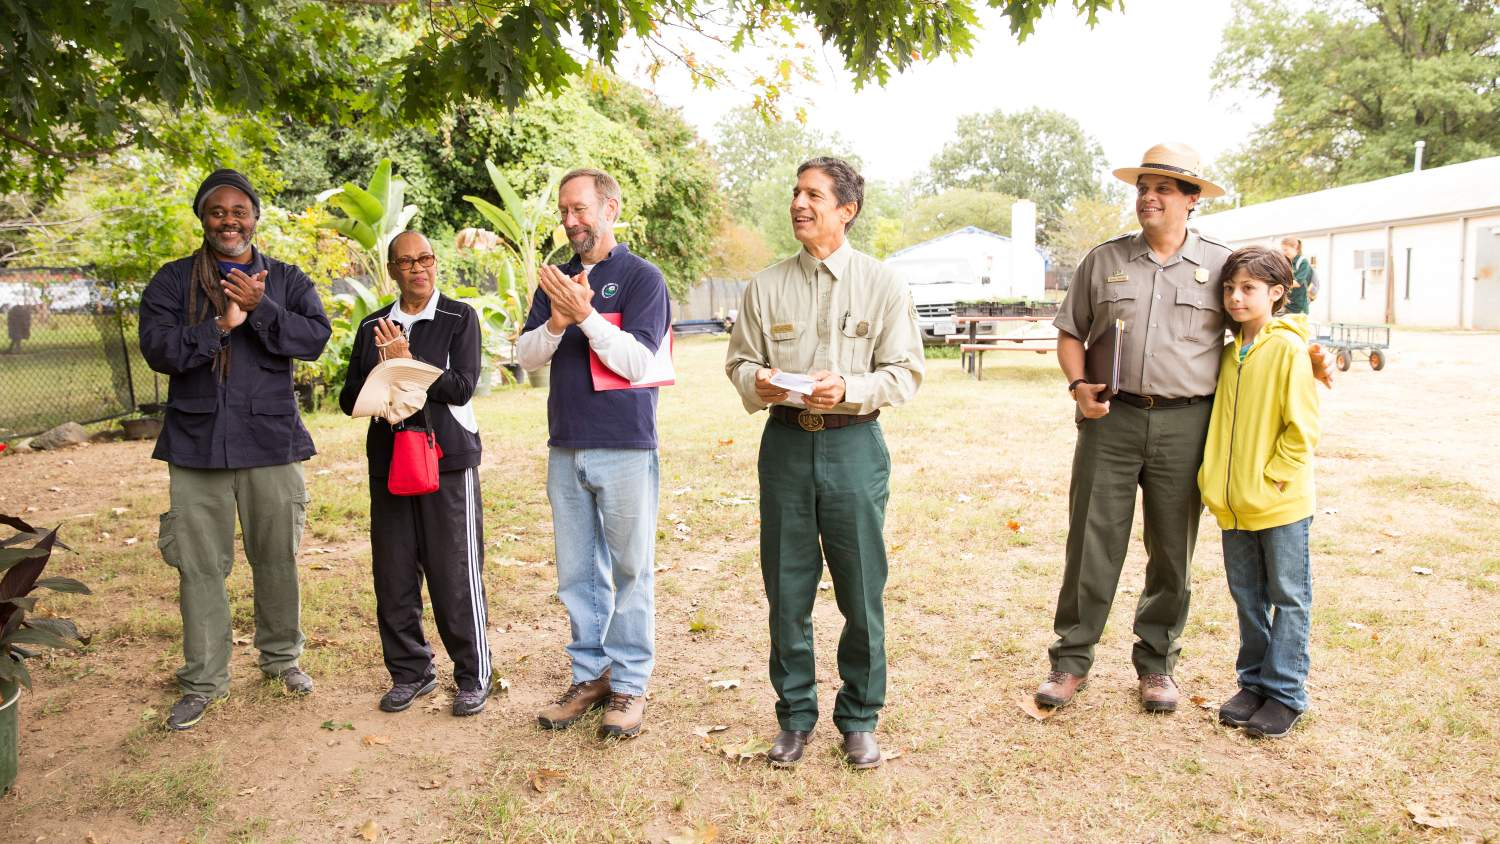 Alan Spears and others at the Kenilworth Aquatic Gardens NPLD Event in 2015